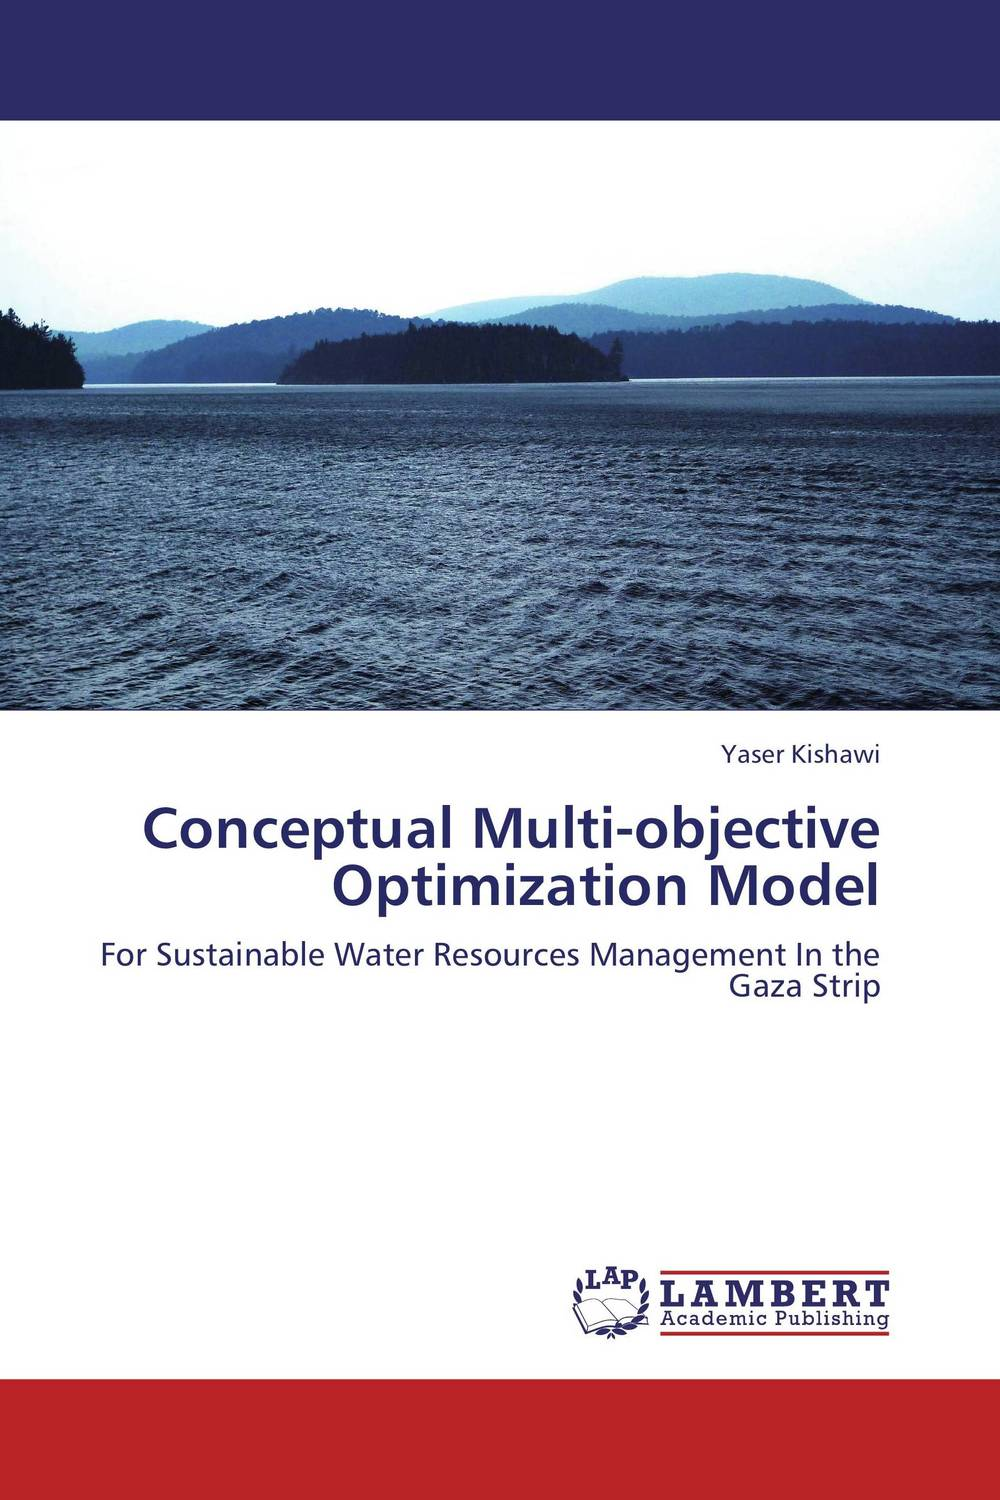 Conceptual Multi-objective Optimization Model eia a tool to support sustainable development in gaza strip palestine